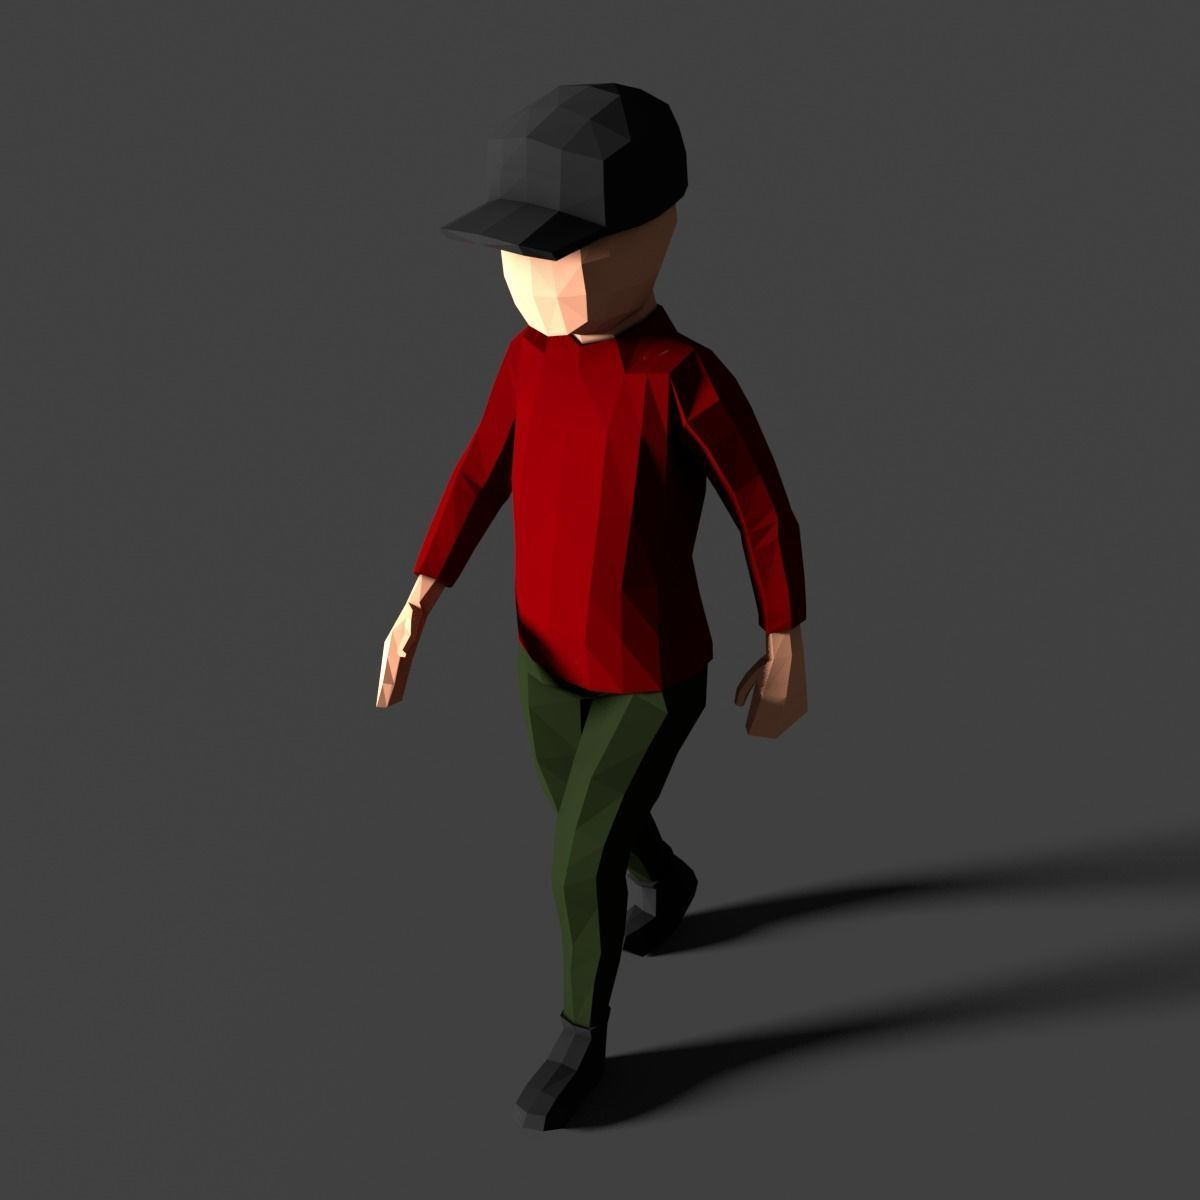 Low Poly Boy in Red Shirt Character